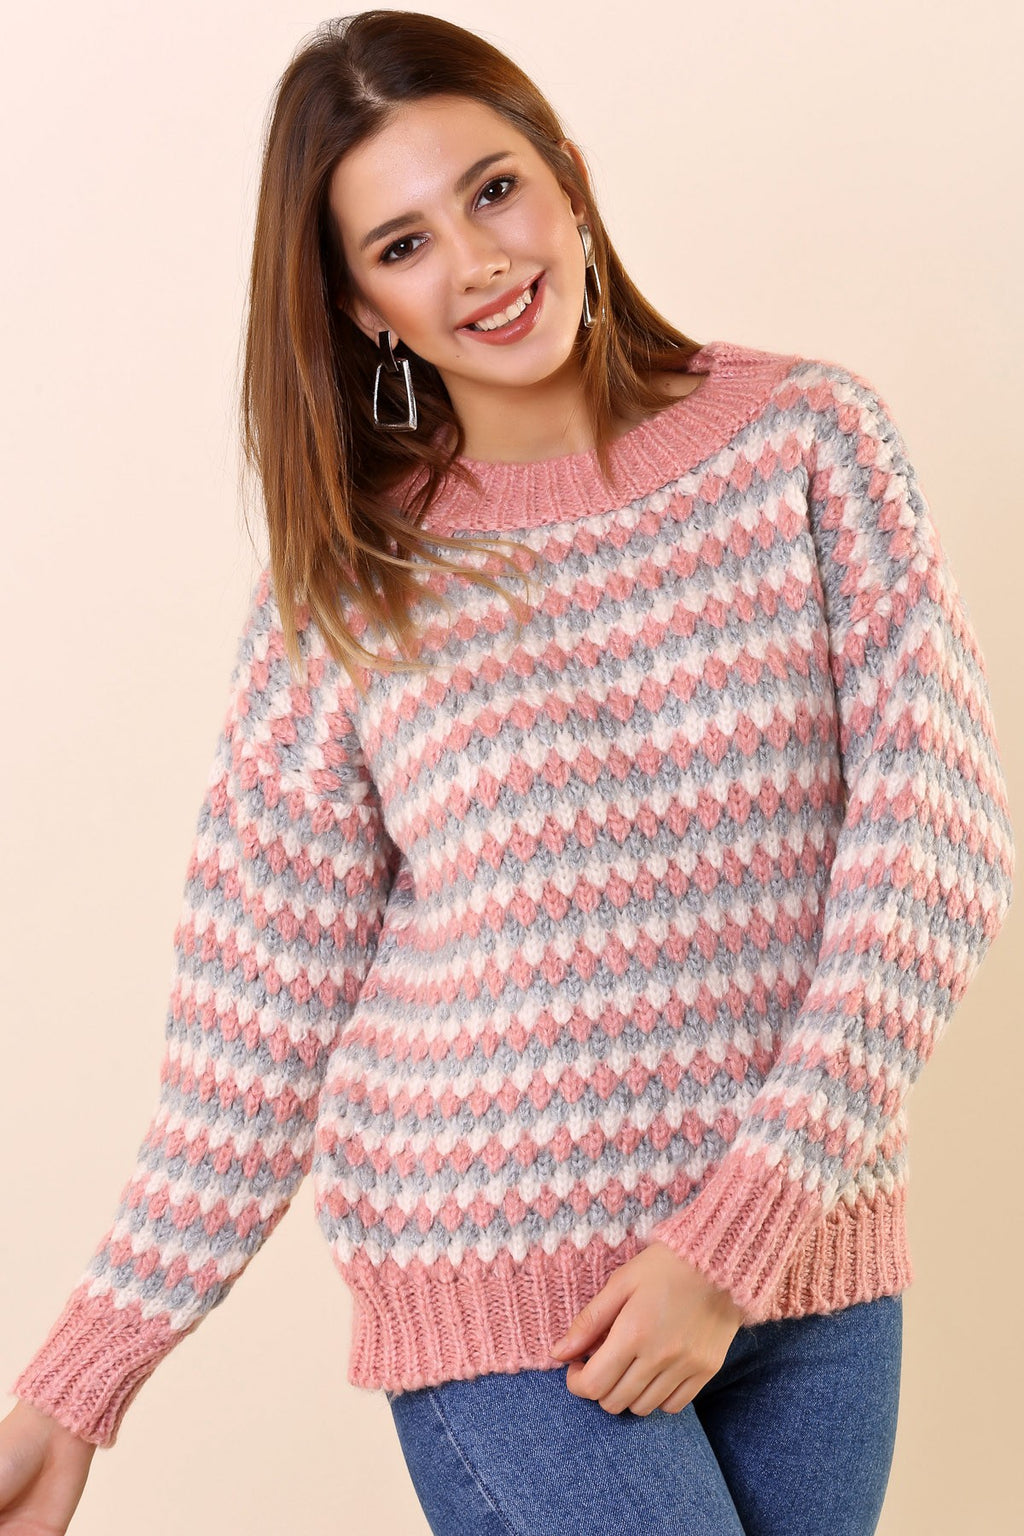 Crew Neck Patterned Pink Tricot Pullover - THE UNIQUE FIT